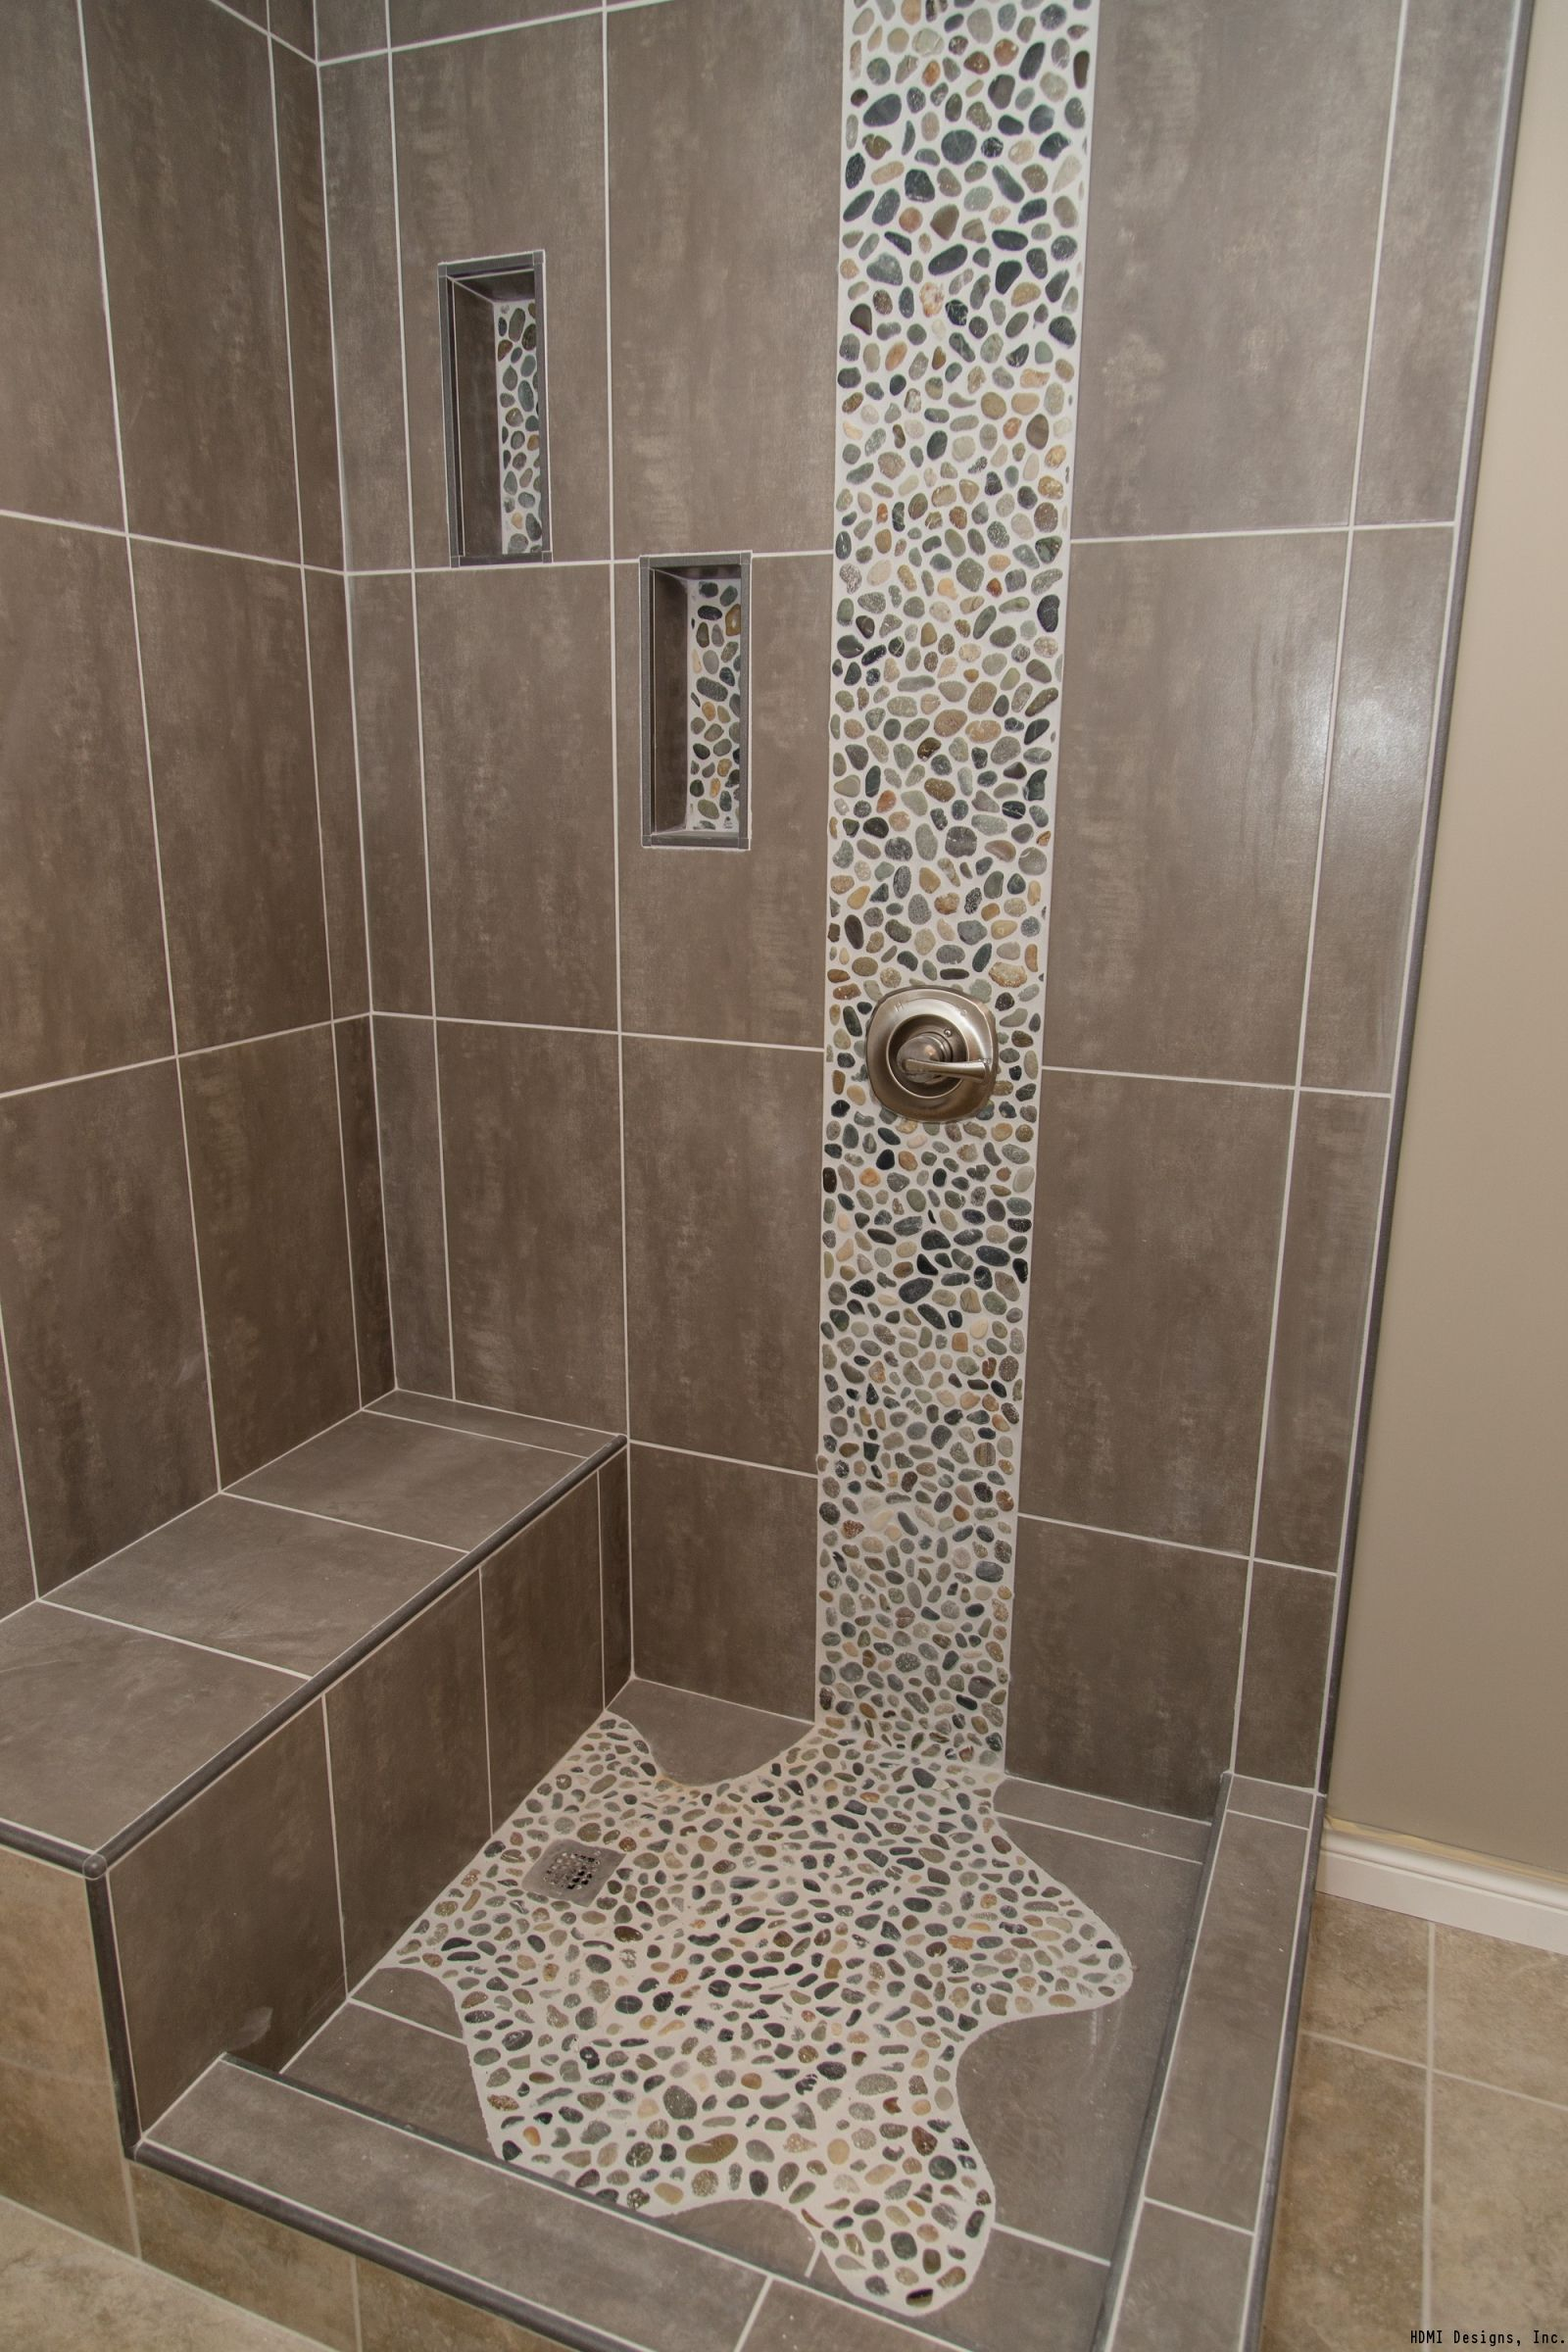 Bathroom designs pictures with tiles - Spruce Up Your Shower By Adding Pebble Tile Accents Click The Pin To Get Started On Your Next Bathroom Remodeling Project Mais